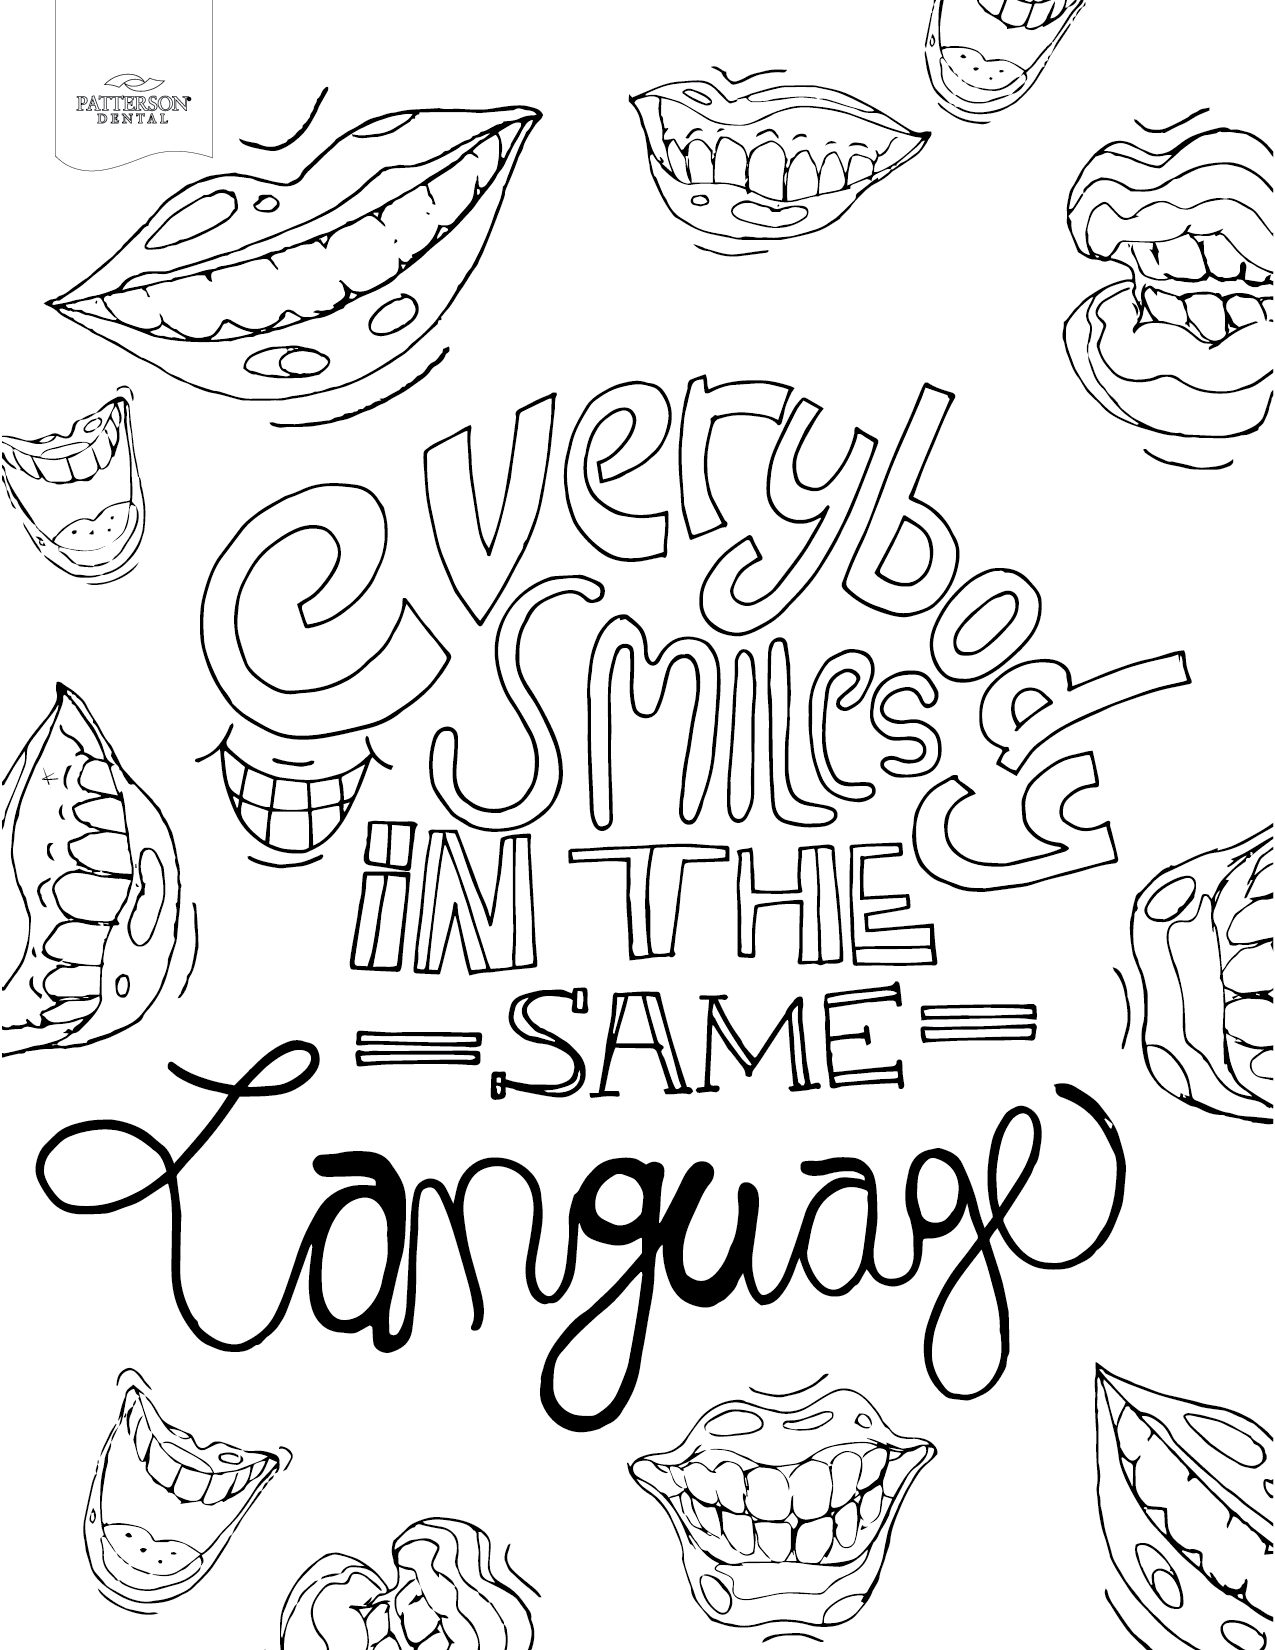 Everybody Smiles In The Same Language Coloring Page From Patterson Dental